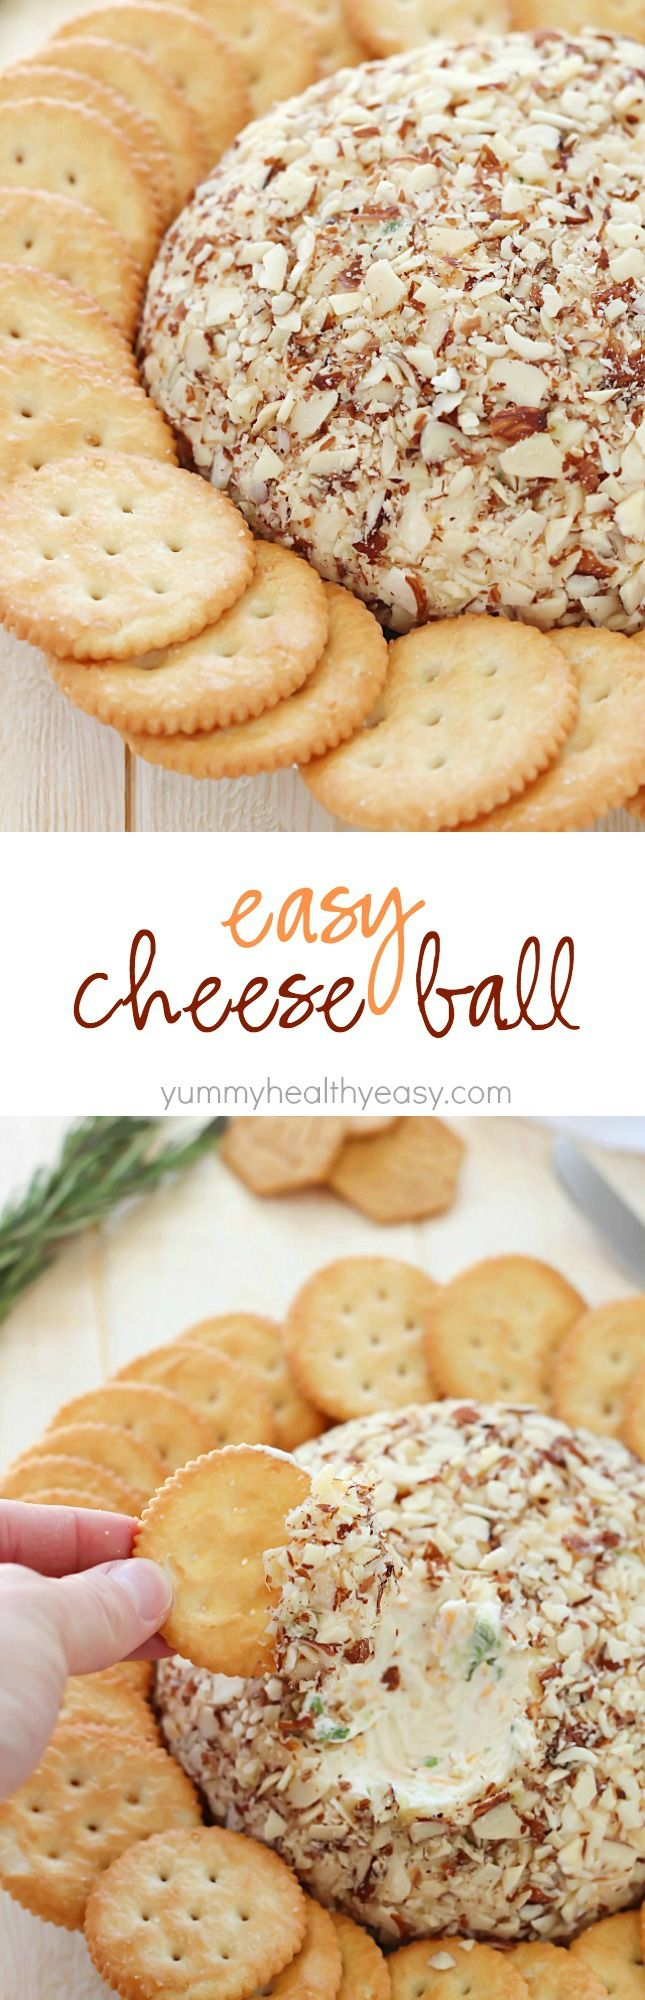 Easy Cheese Ball - A super easy cheese ball that's sure to impress any guests! #tailgating #appetizer #foodporn http://livedan330.com/2014/12/26/easy-cheese-ball/